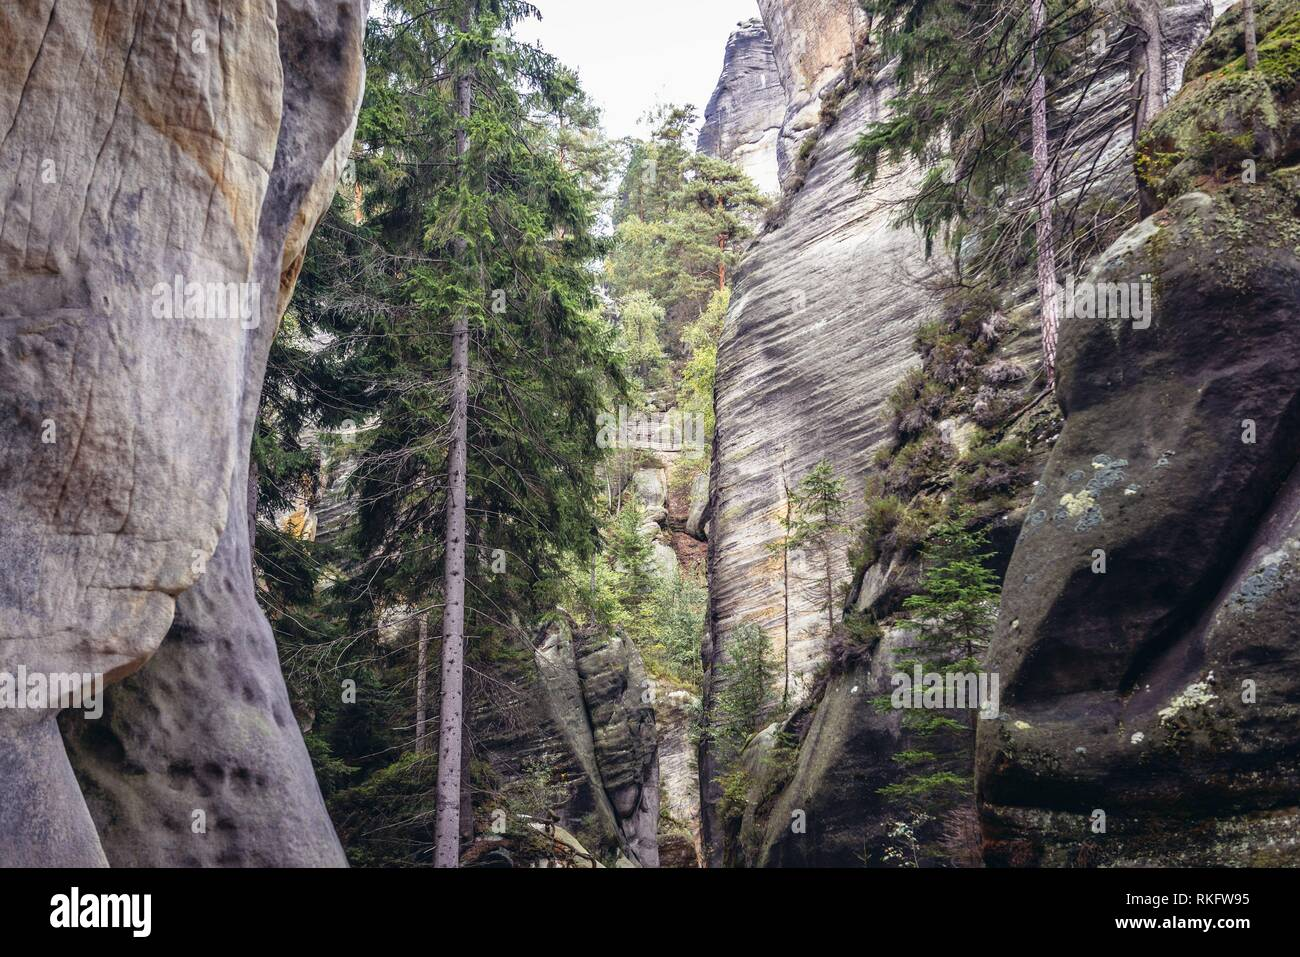 National Nature Reserve Adrspach-Teplice Rocks near Adrspach village in northeastern Bohemia region, Czech Republic. - Stock Image